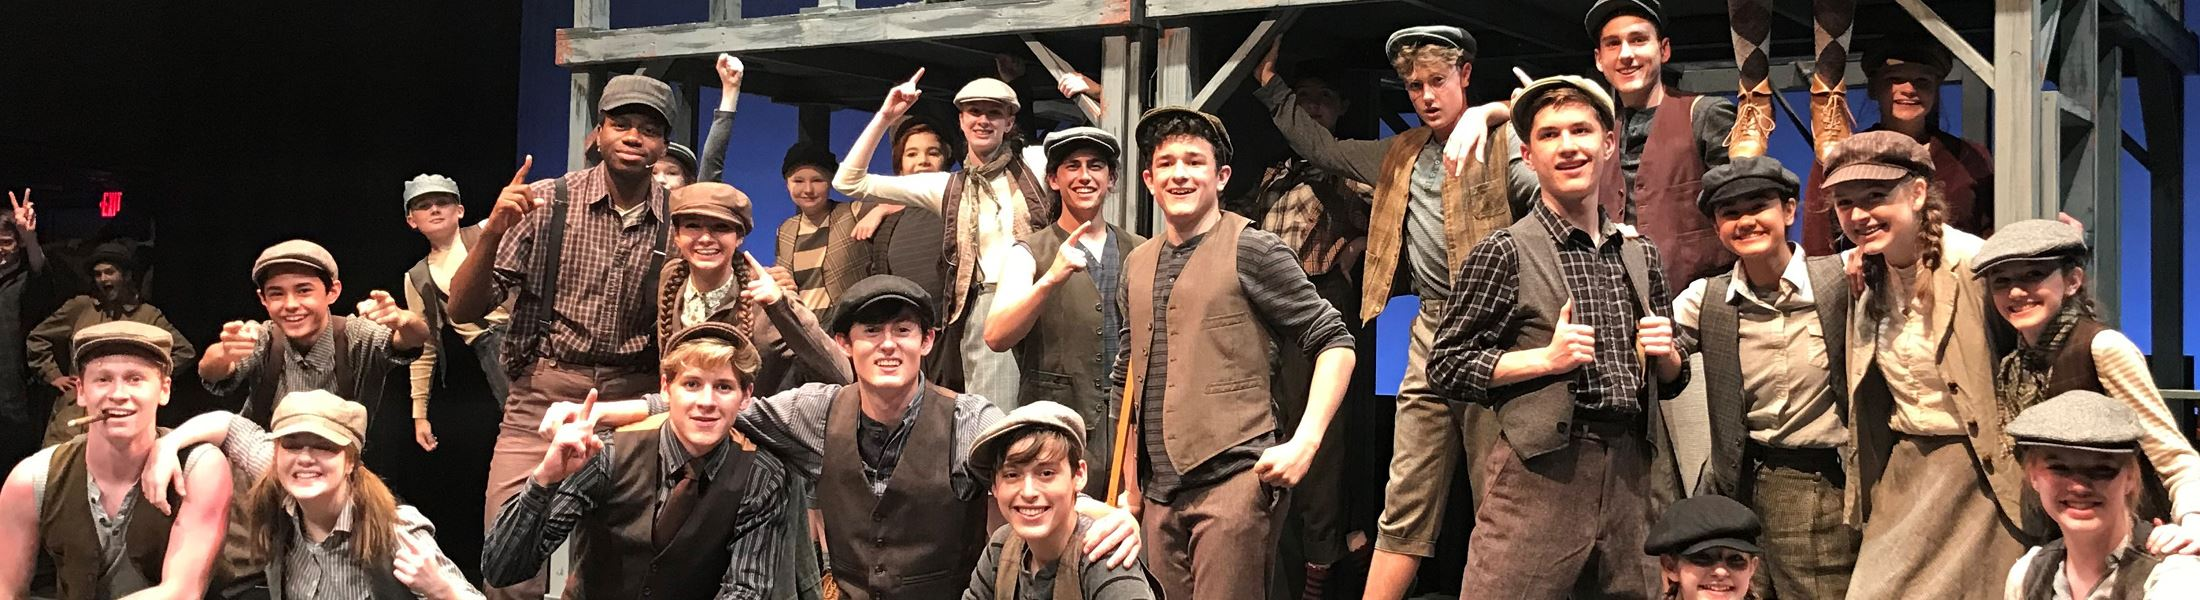 Banner photo of Newsies full cast